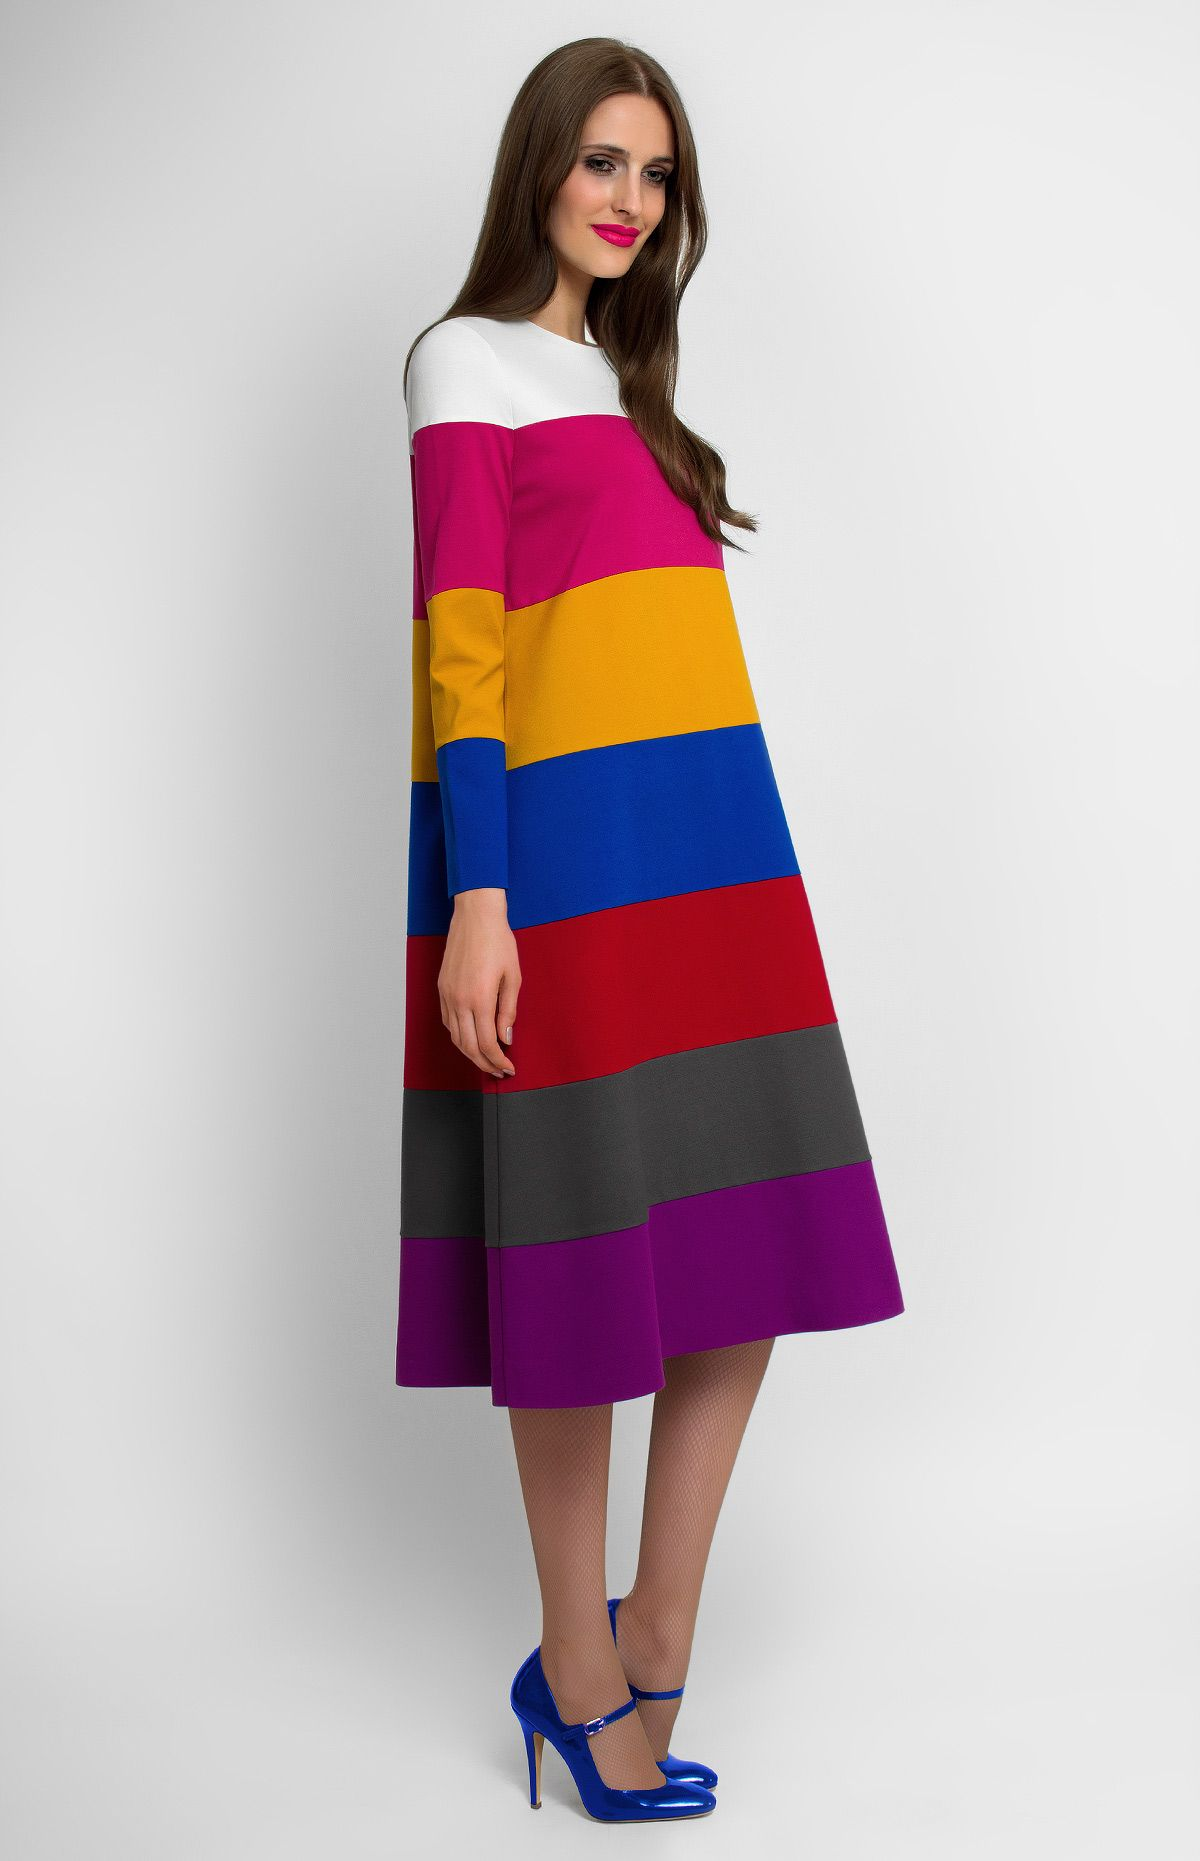 4cd46c9b2 Striped A-shape long-sleeve dress of multi-color knitted fabric. Round  neck. Hidden back zip closure. Without pockets and unlined.